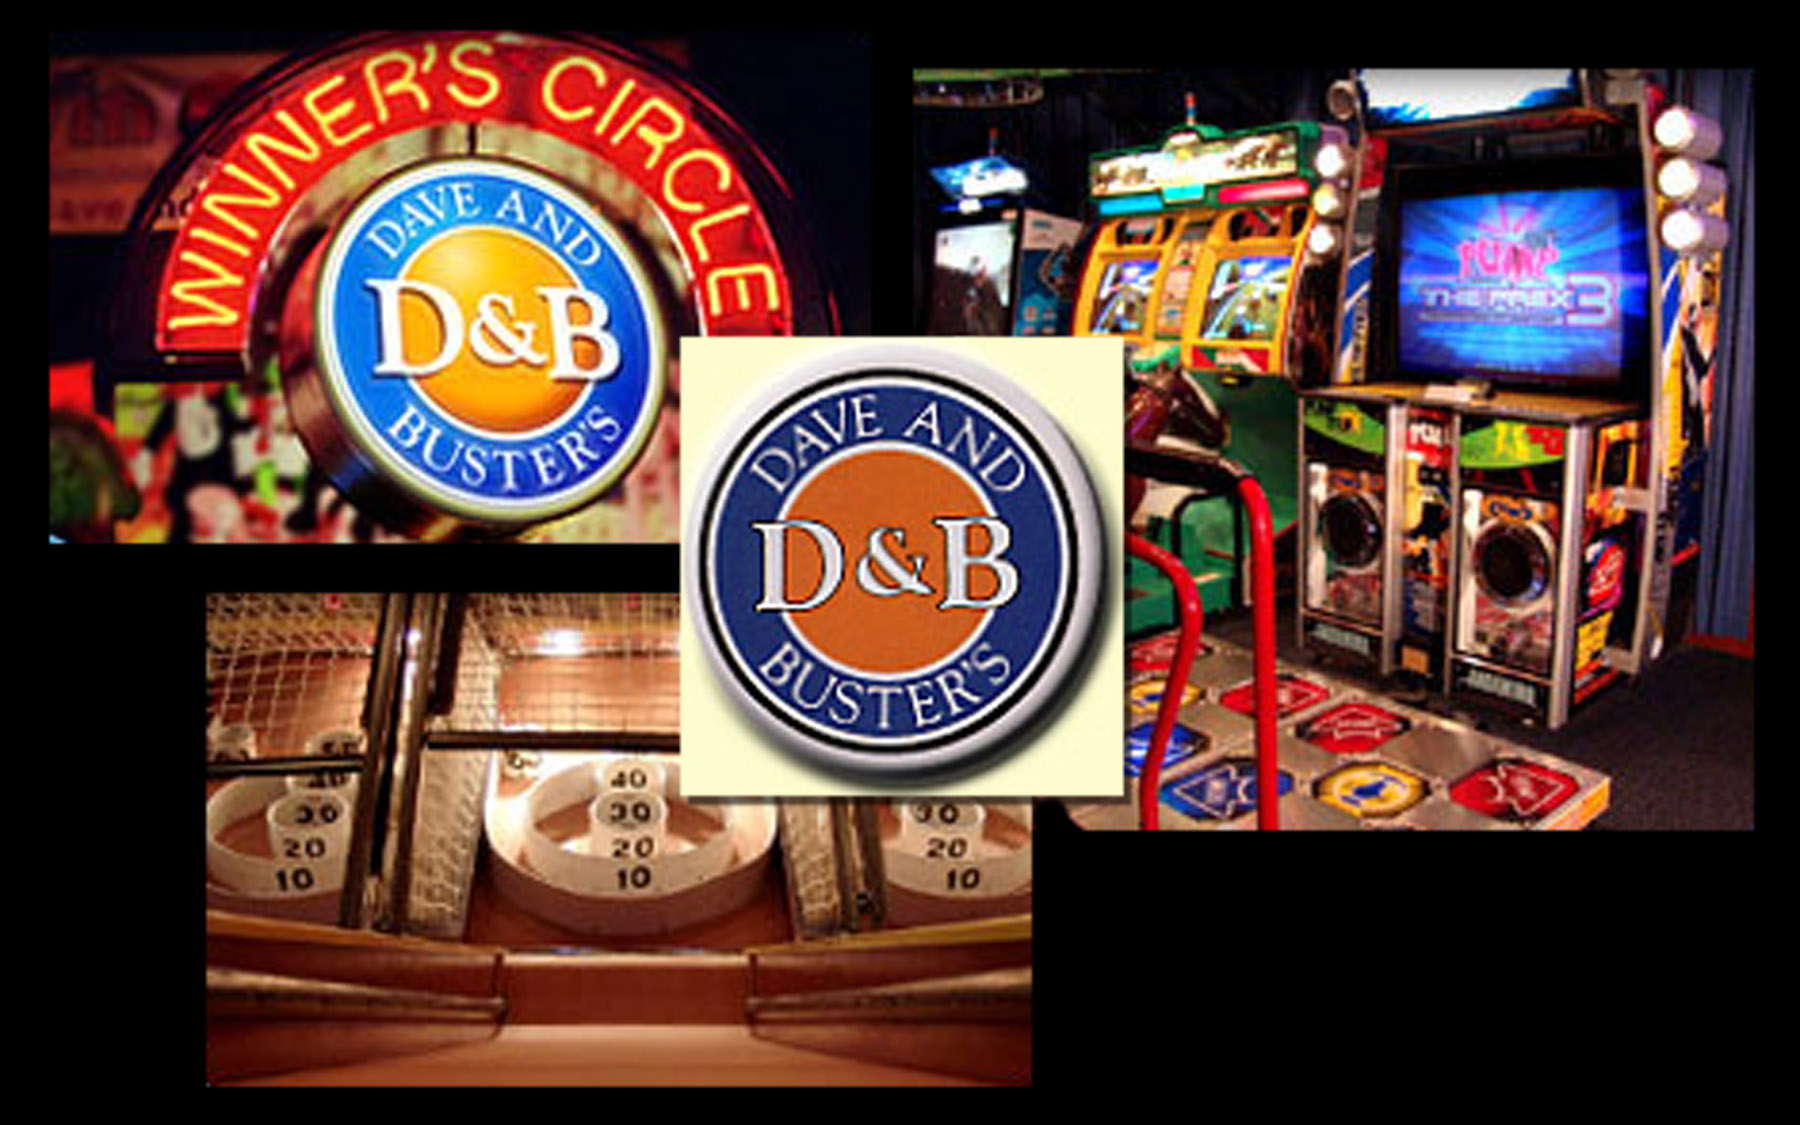 Dave & Buster's in Lawrenceville, GA